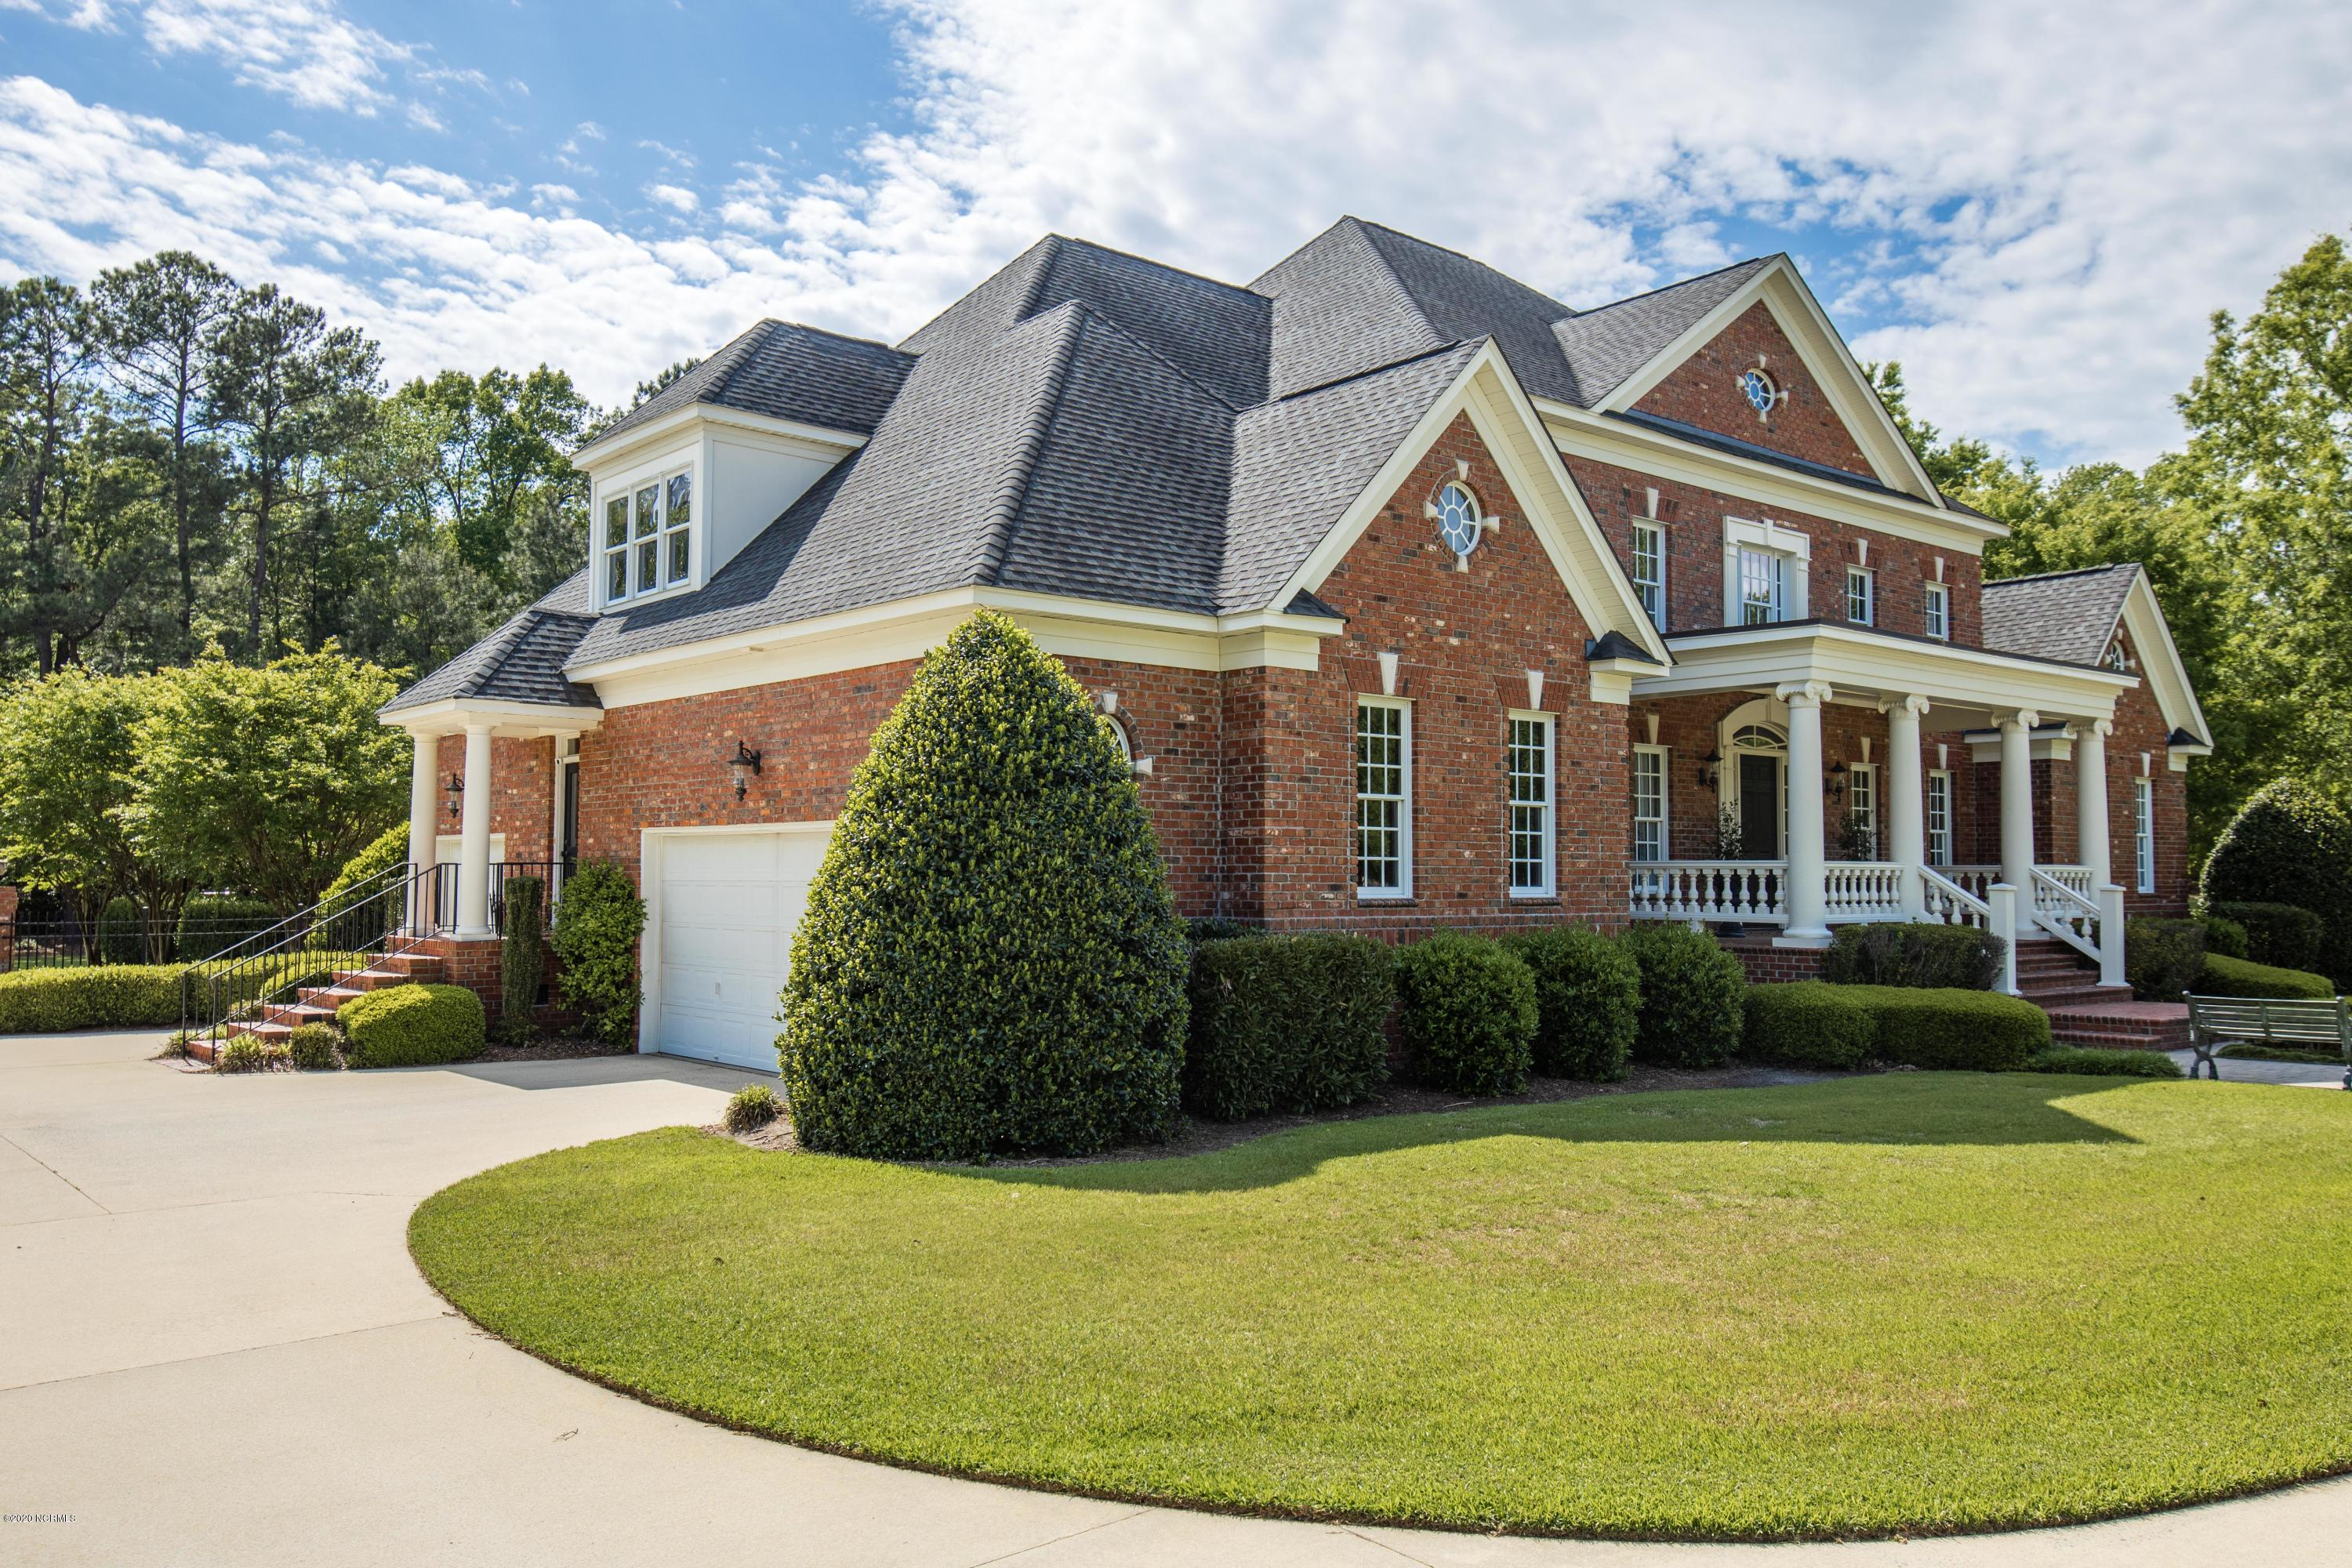 3501 Star Hill Farm Road, Greenville, North Carolina 27834, 4 Bedrooms Bedrooms, 14 Rooms Rooms,4 BathroomsBathrooms,Single family residence,For sale,Star Hill Farm,100206817